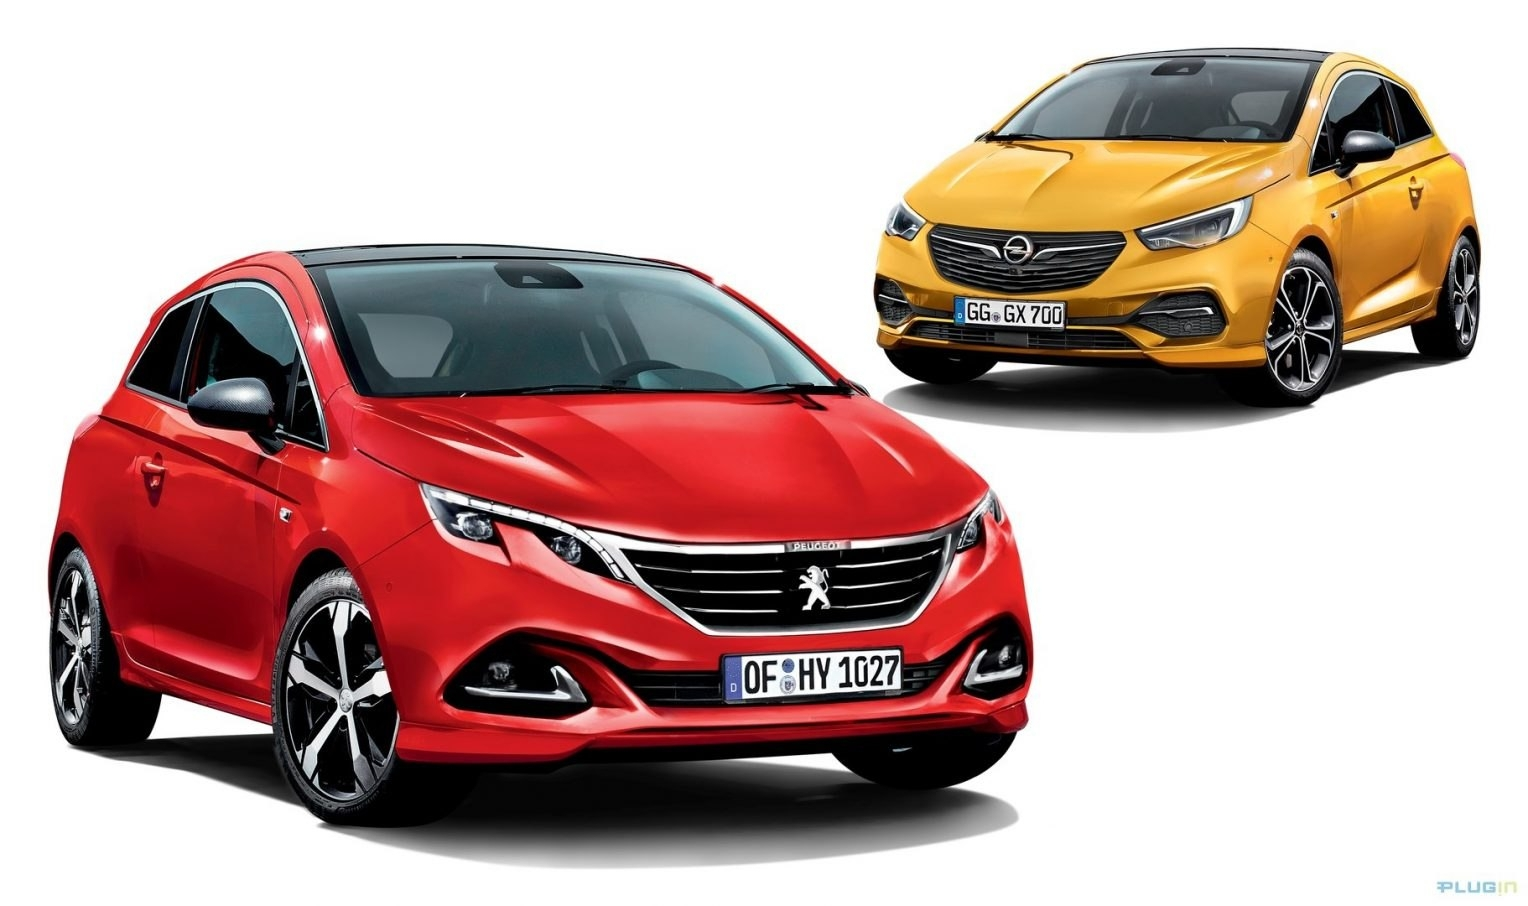 97 The Best 2019 Opel Corsa Rumors